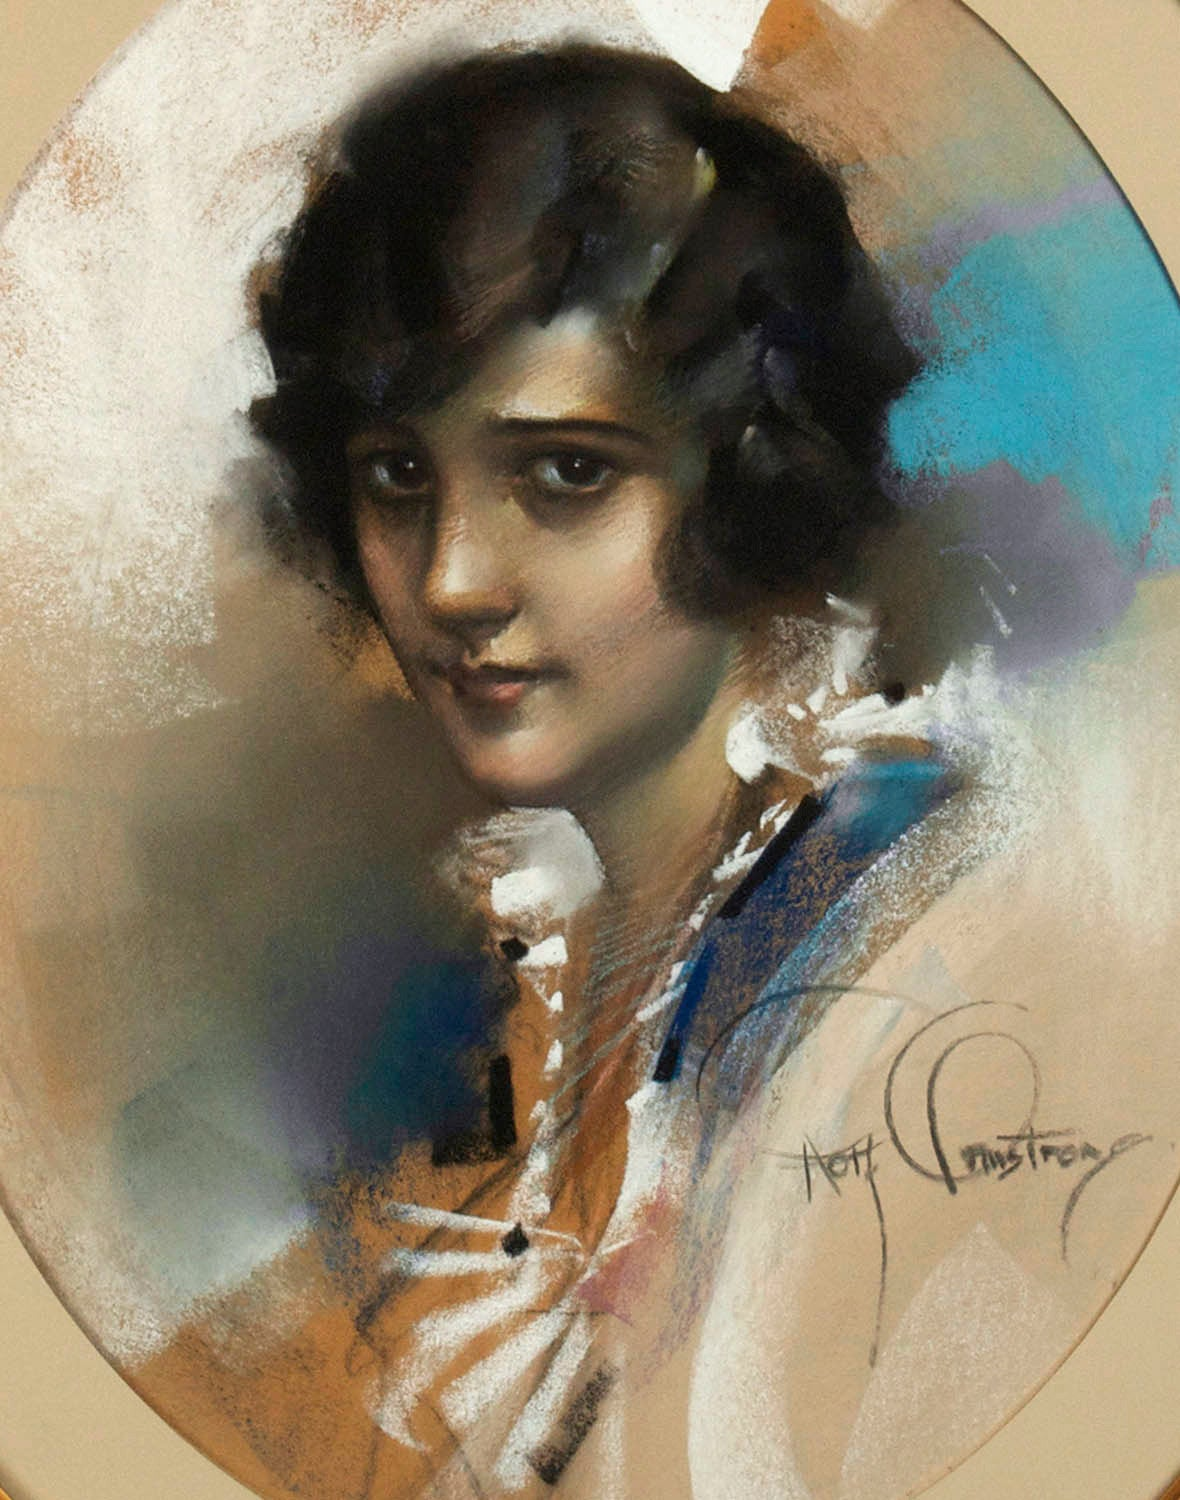 A Brown Eyed Girl - Art Nouveau Art by Rolf Armstrong